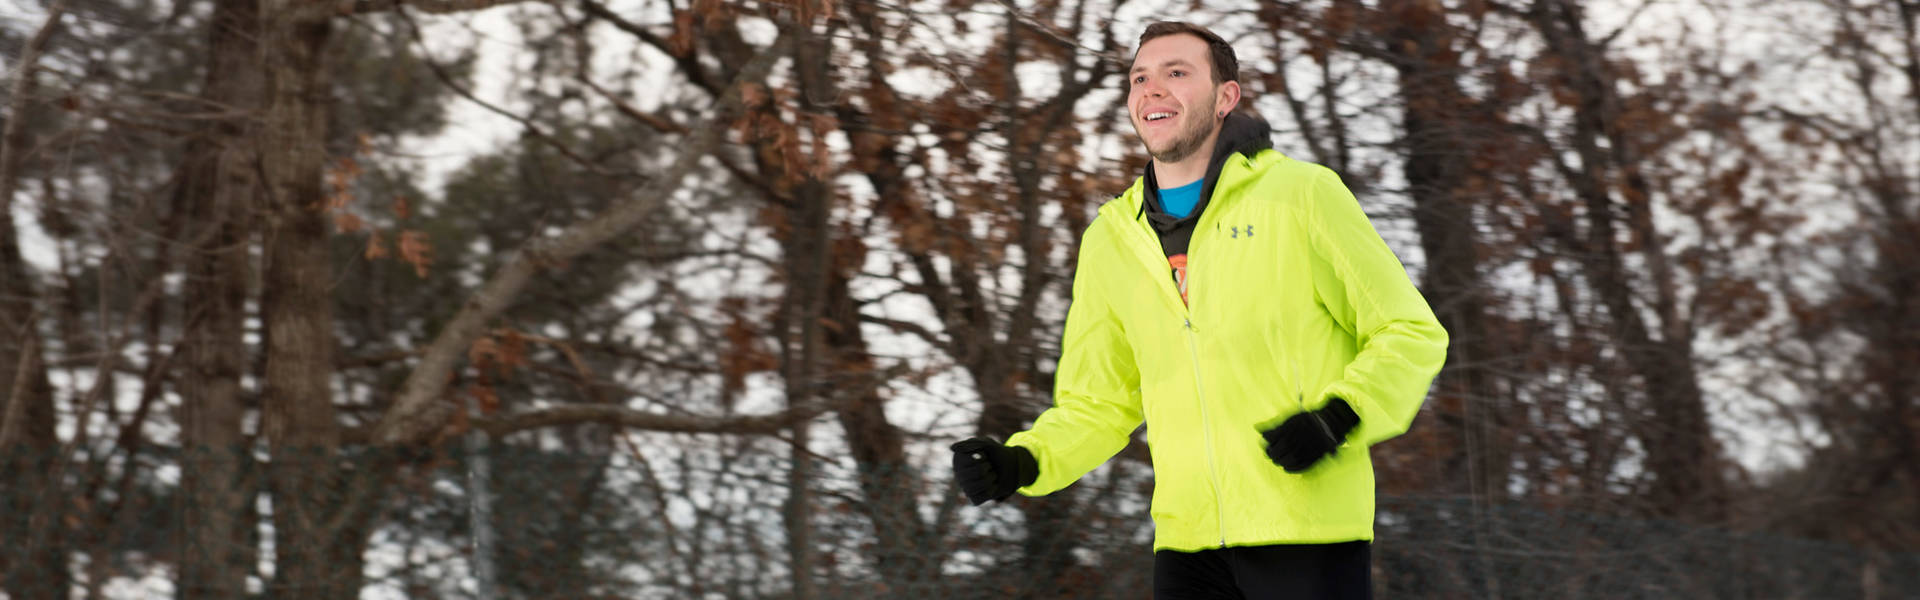 Student running during the winter season.